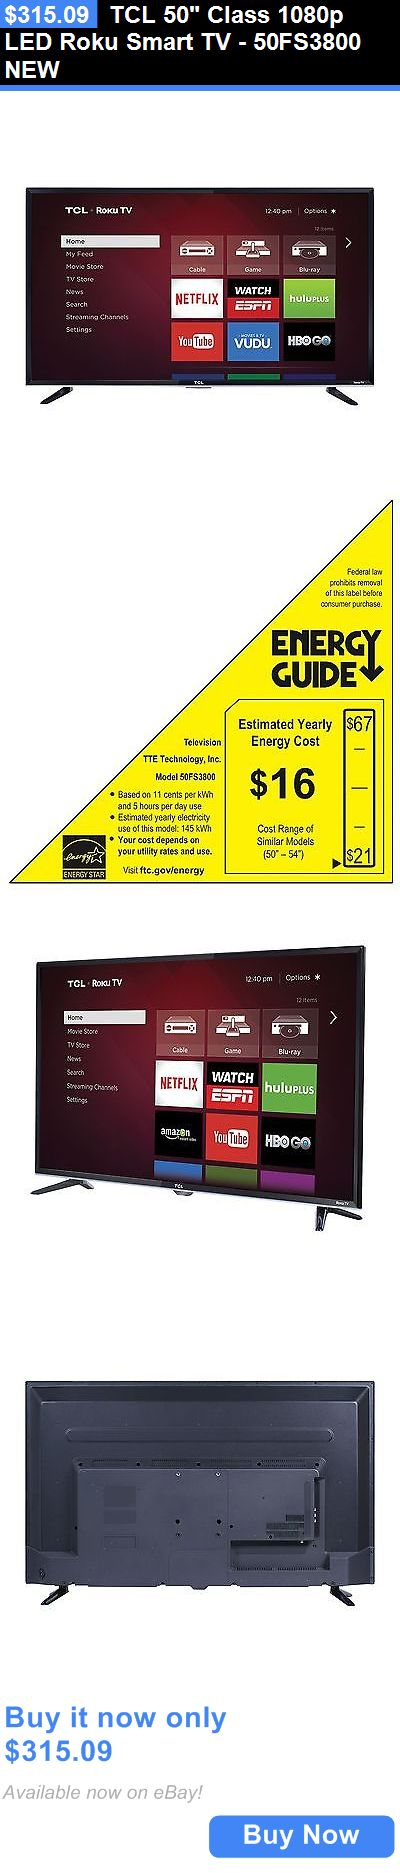 Smart TV: Tcl 50 Class 1080P Led Roku Smart Tv - 50Fs3800 New BUY IT NOW ONLY: $315.09